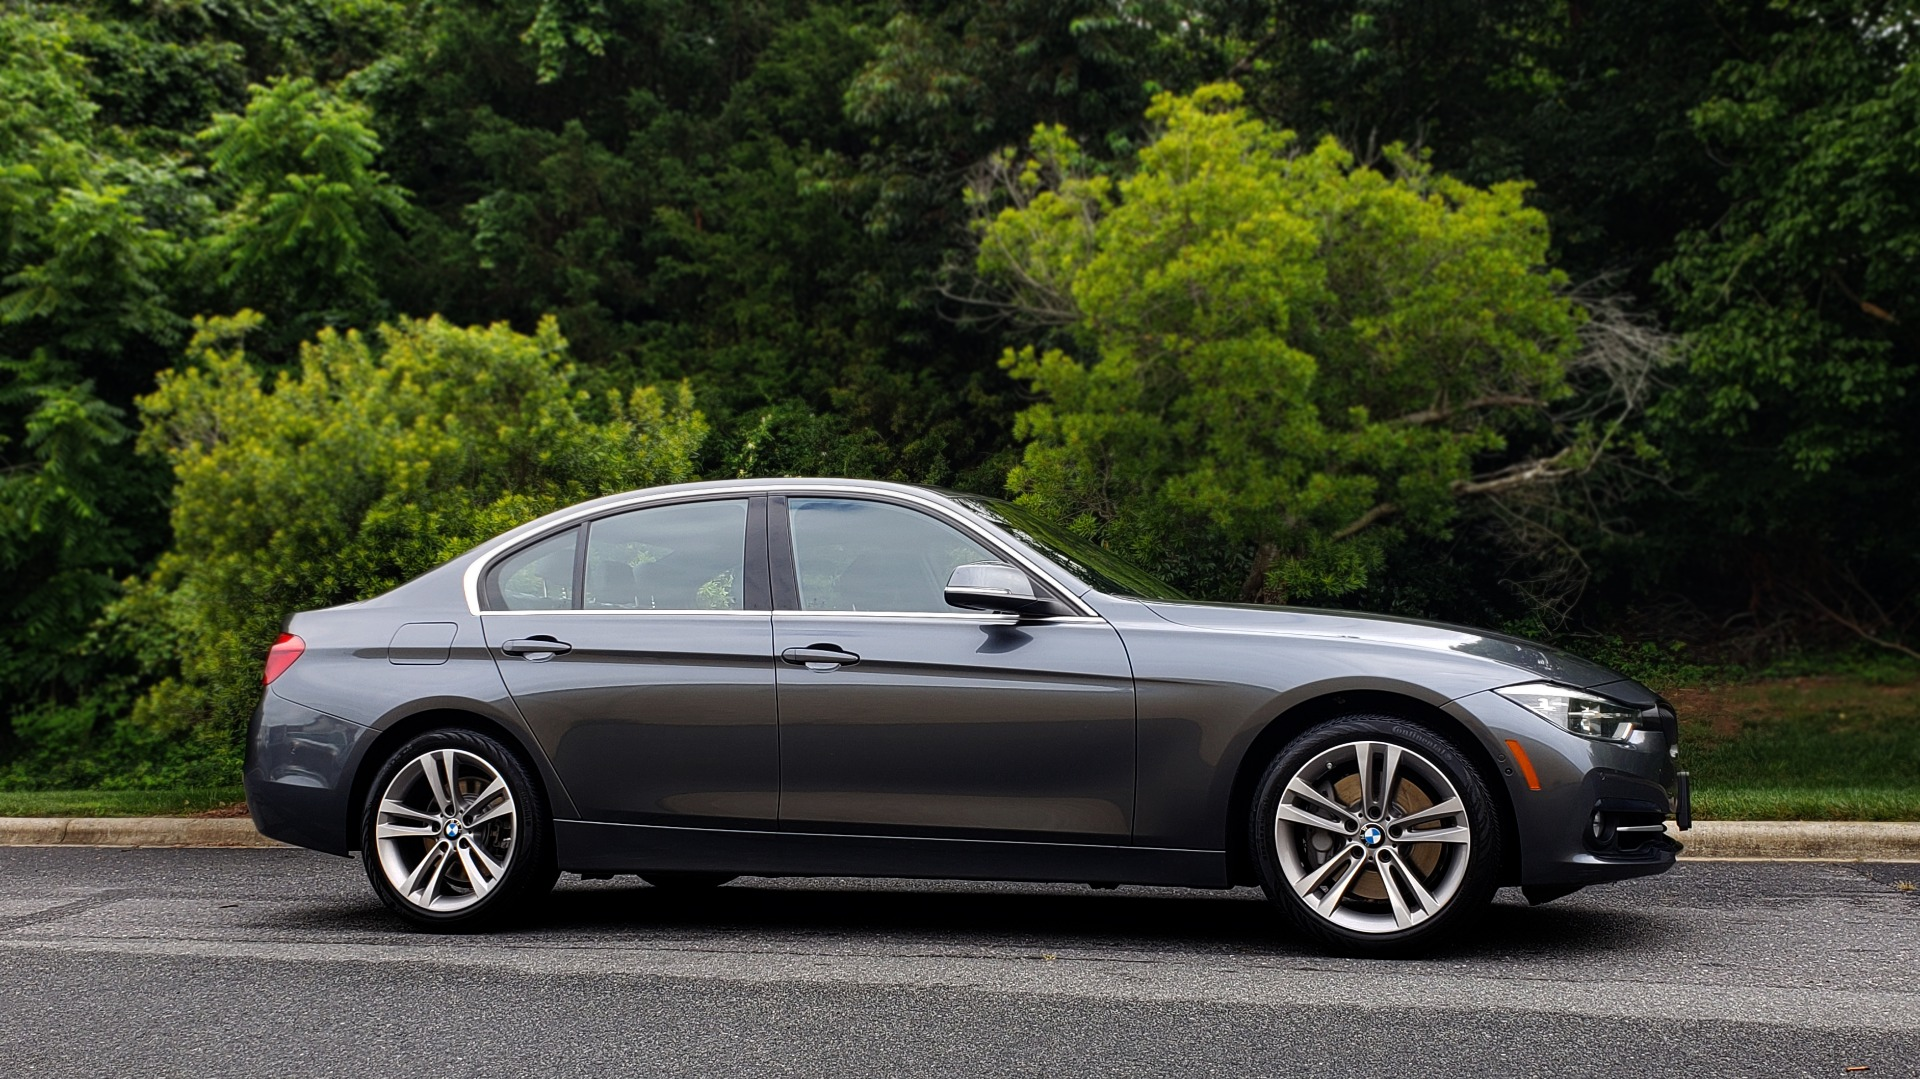 Used 2017 BMW 3 SERIES 340I XDRIVE SPORT / NAV / DRVR ASST PLUS / PARK ASST / CLD WTHR for sale $28,995 at Formula Imports in Charlotte NC 28227 5